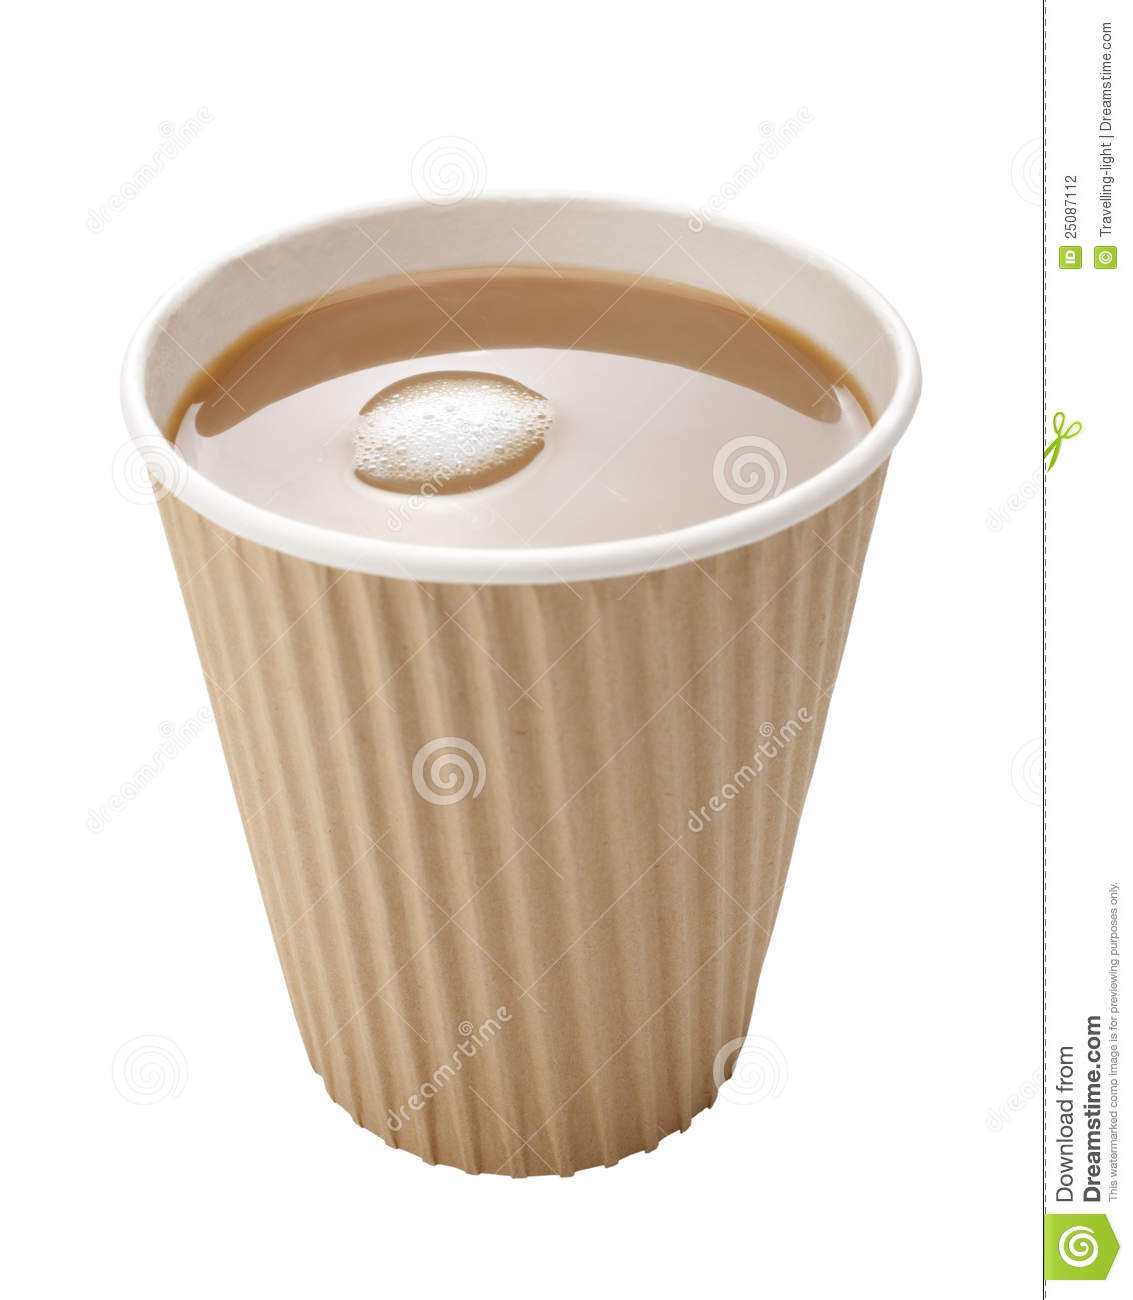 Americano Coffee To Go Takeaway Coffee Disposable Cup Milk Stock Photography